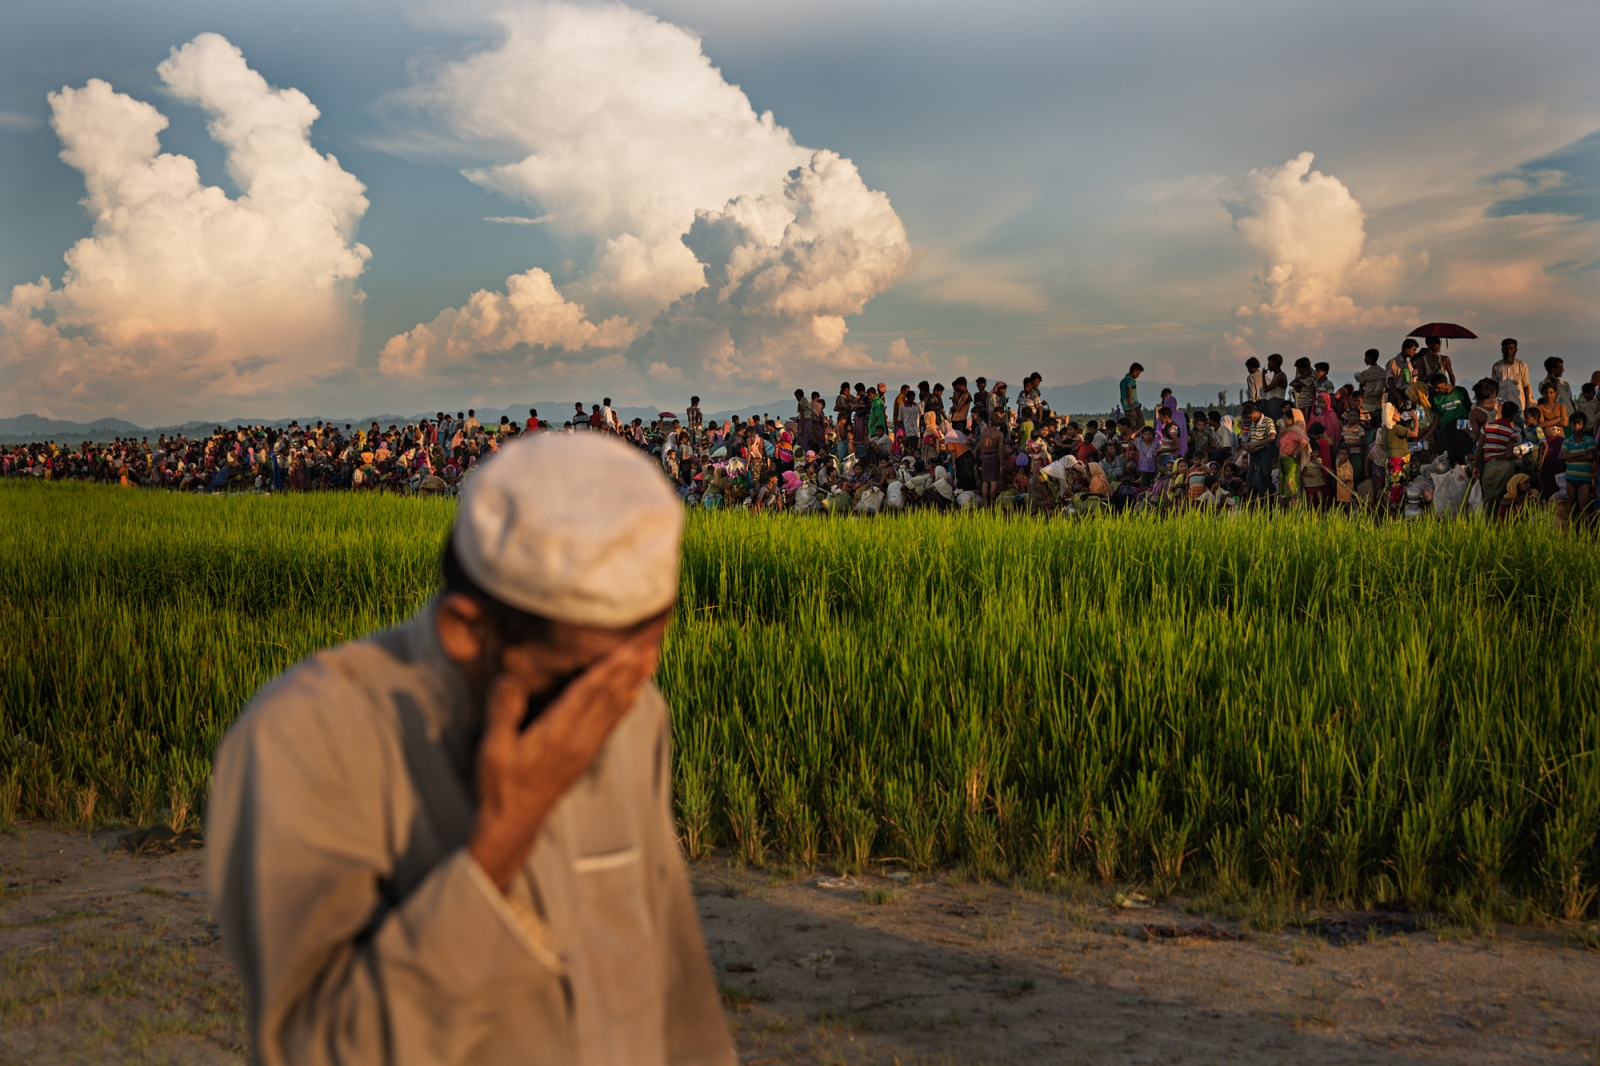 Abu Jafar (foreground), 60, prays next to a long line of Rohingya refugees, as they wait to be let into the camps after crossing the Naf River. Abu Jafar made the same crossing in 1992, and said that the border guards had mistaken him for a new arrival and forced him to pray in the rice field instead of in the mosque across the road.